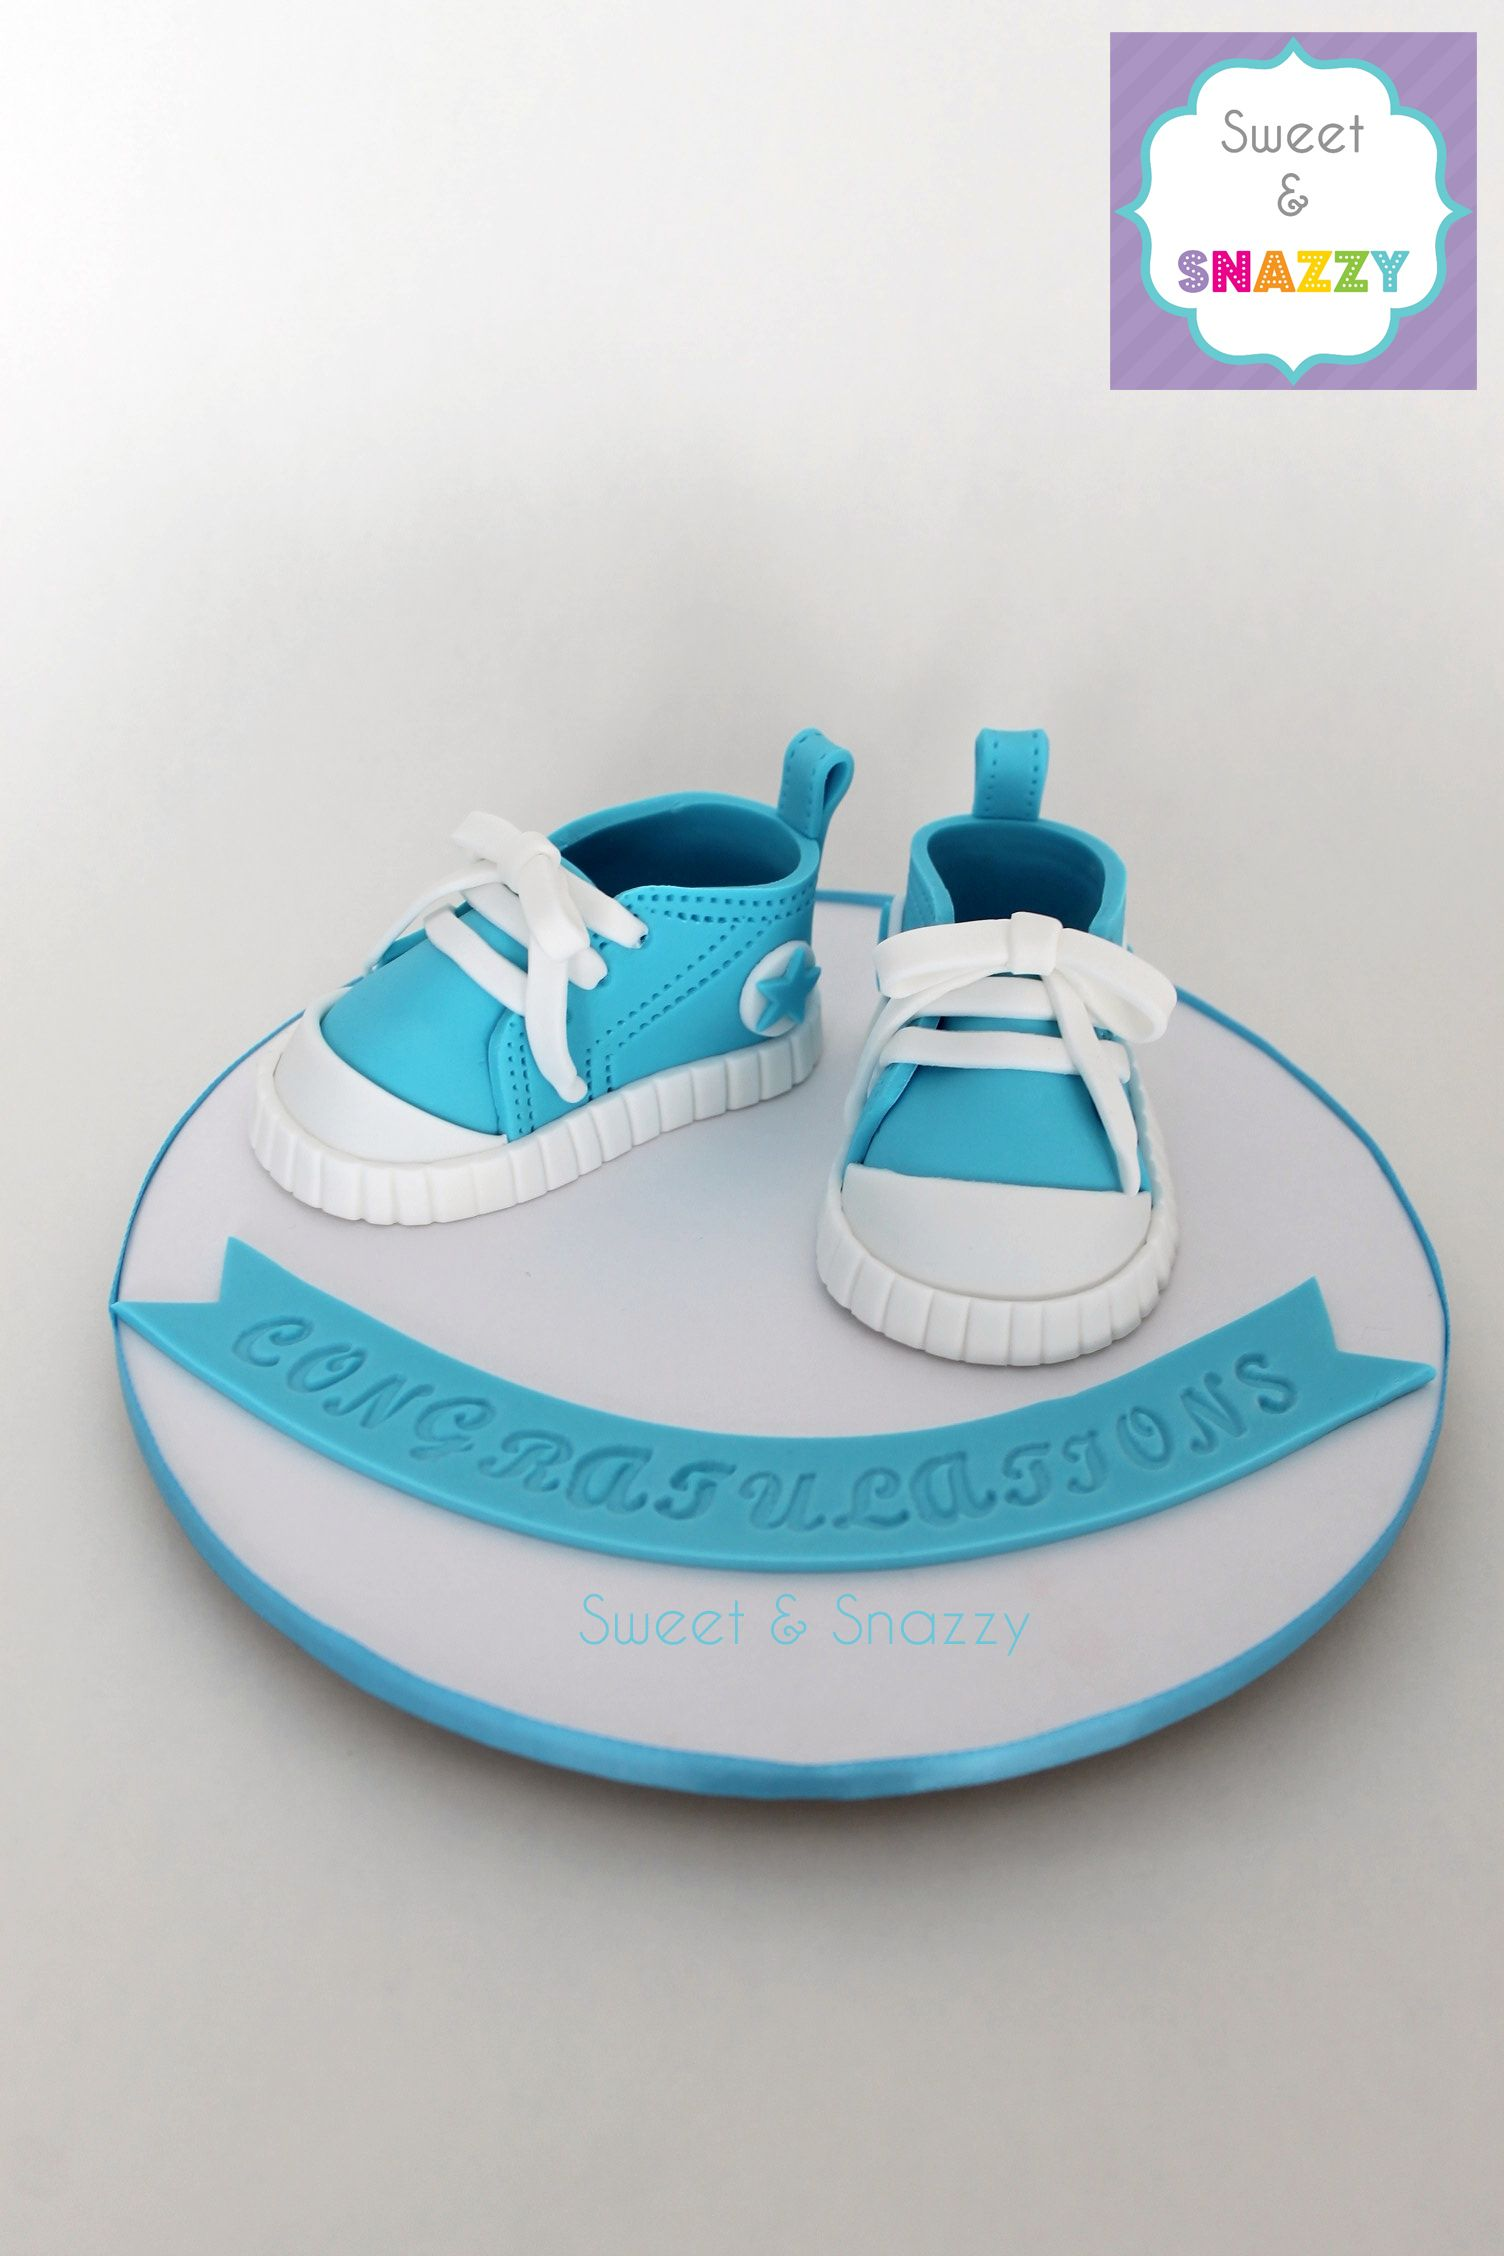 Baby Converse shoes cake topper - fondant baby shoes by Sweet & Snazzy https://www.facebook.com/sweetandsnazzy